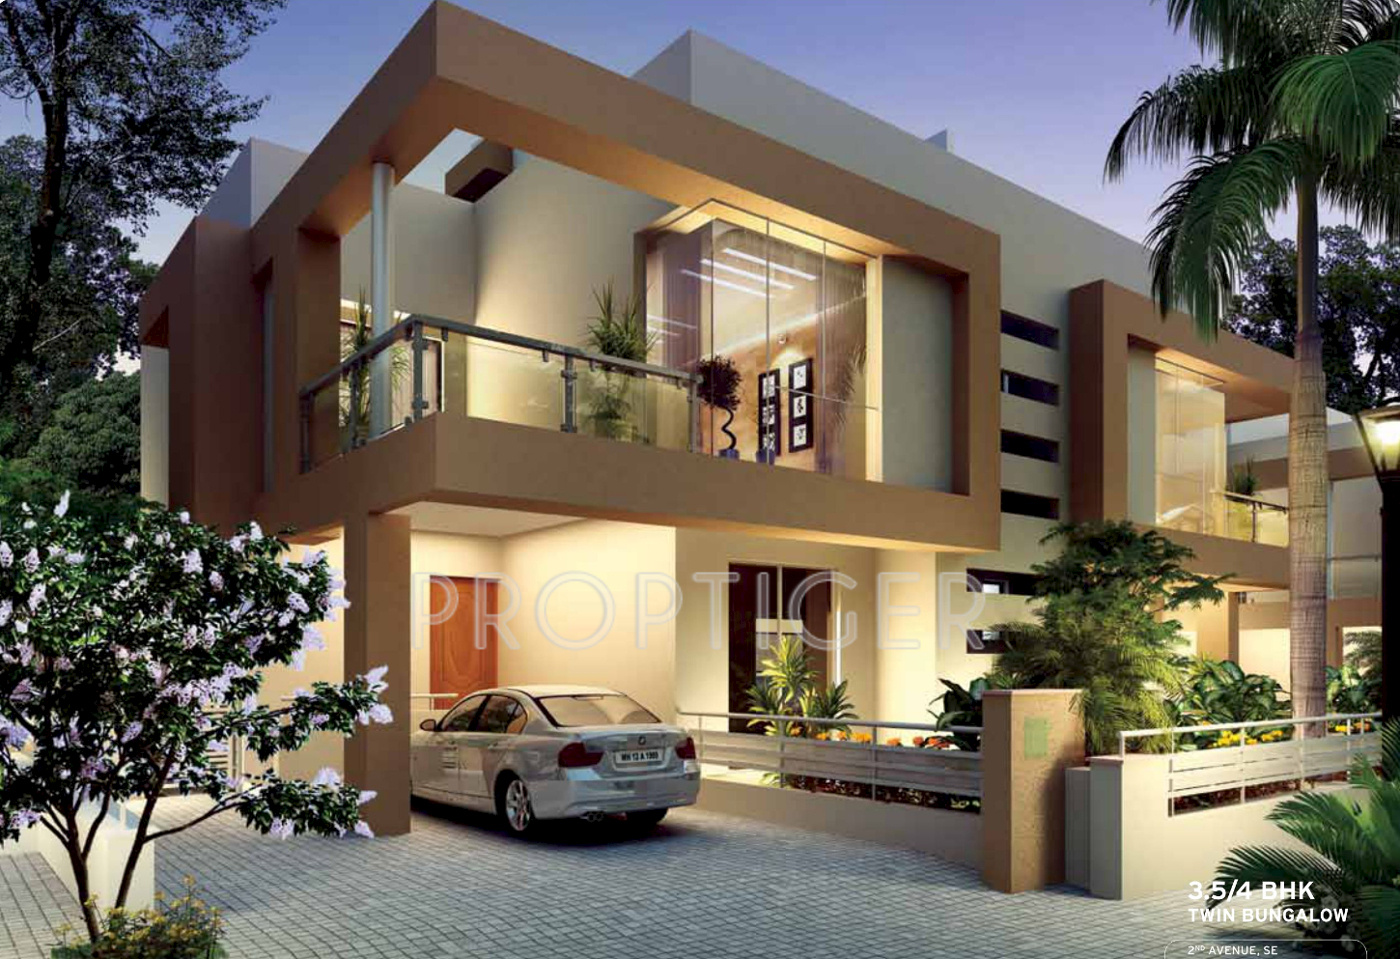 Kolte patil twin bungalows and villa in hinjewadi pune - What is a bungalow ...